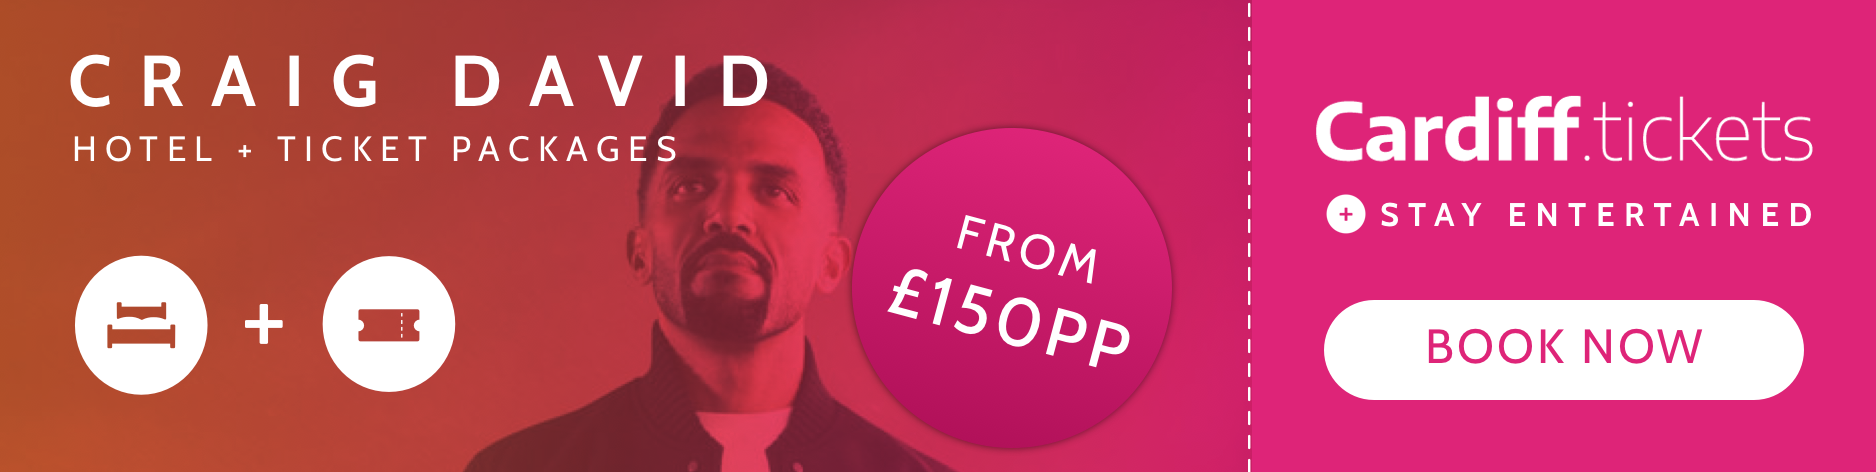 Craig David tickets and hotel package